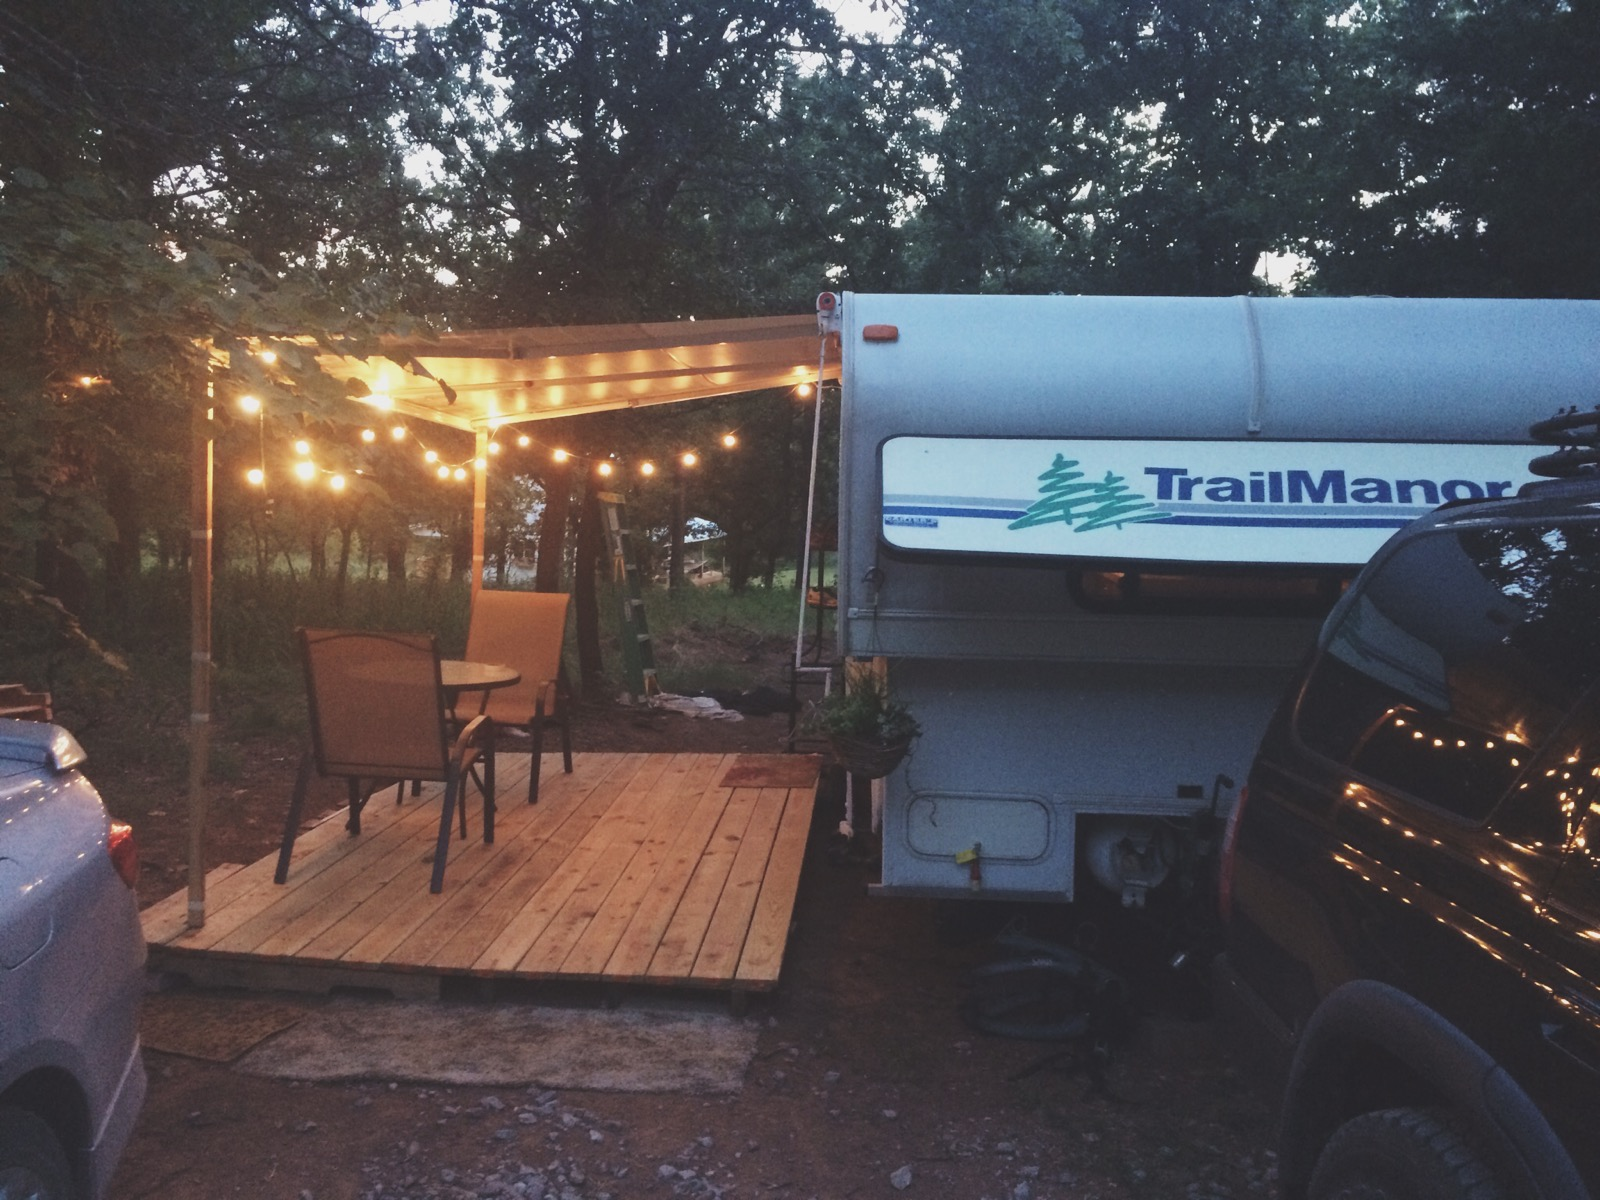 Camper After Moving In - 3 Reasons Why Living In A Camper Was The Best Choice We've Made